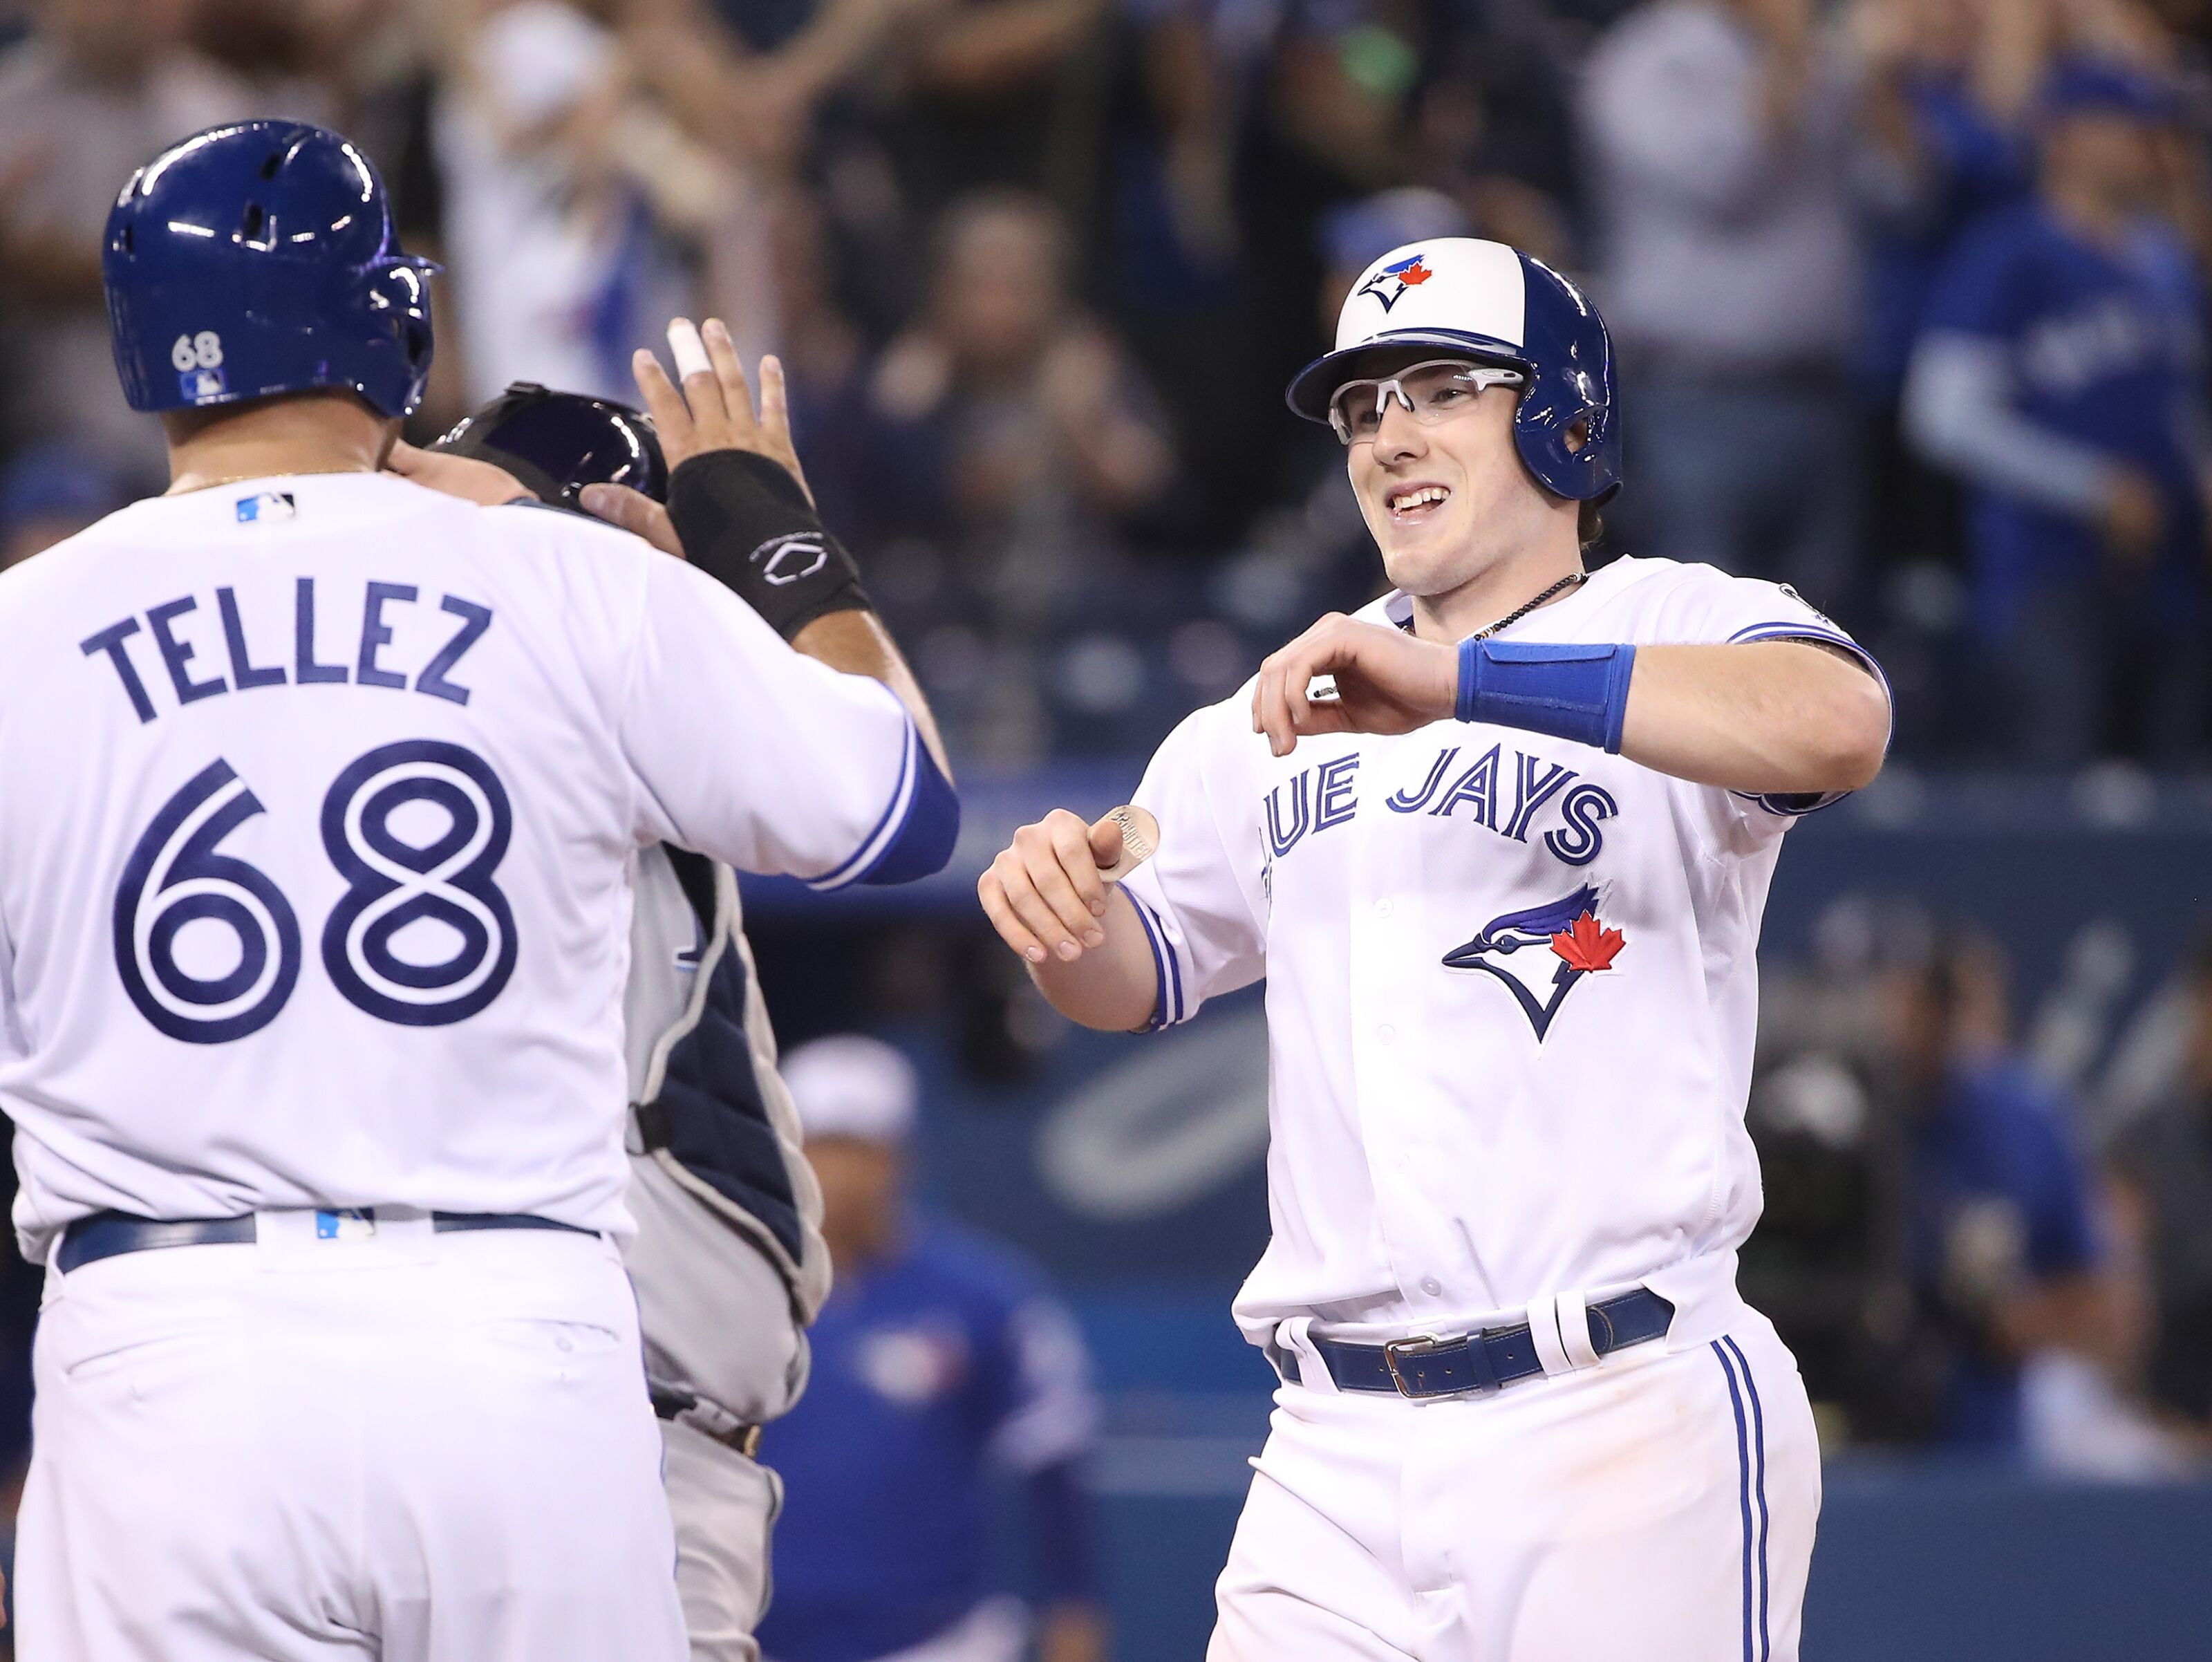 Blue Jays: A different era of players requires a different approach